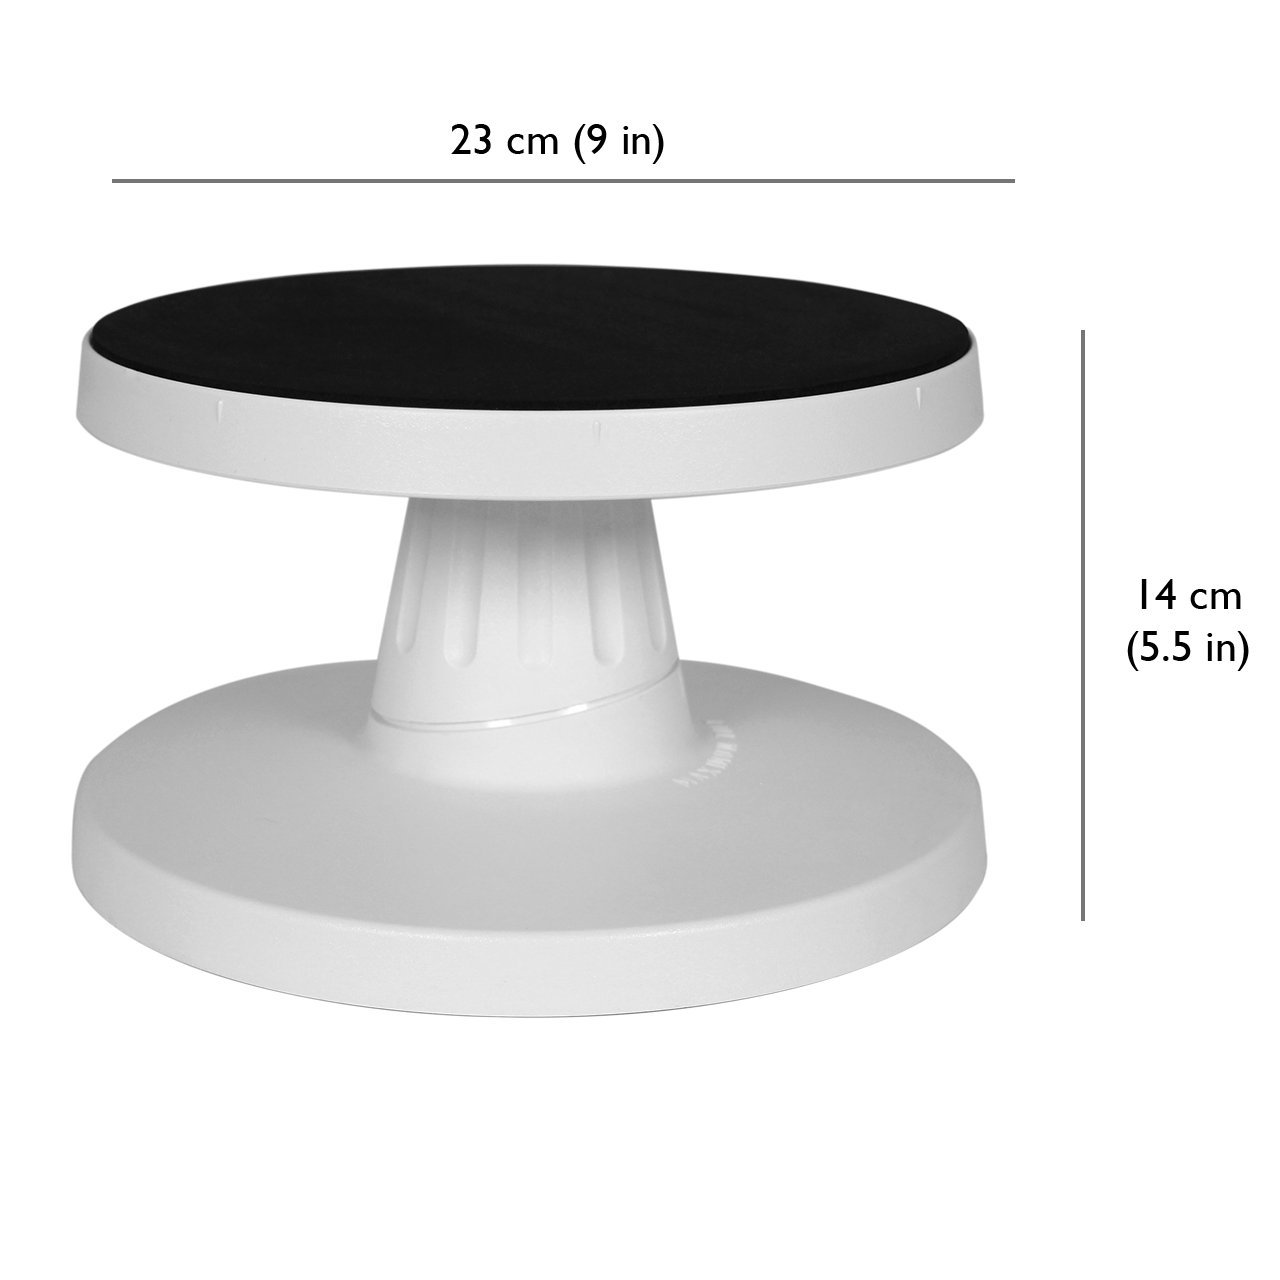 CK Products TT460 PME Tilting Turntable, for Cake Decorating, Standard, White by CK Products (Image #3)